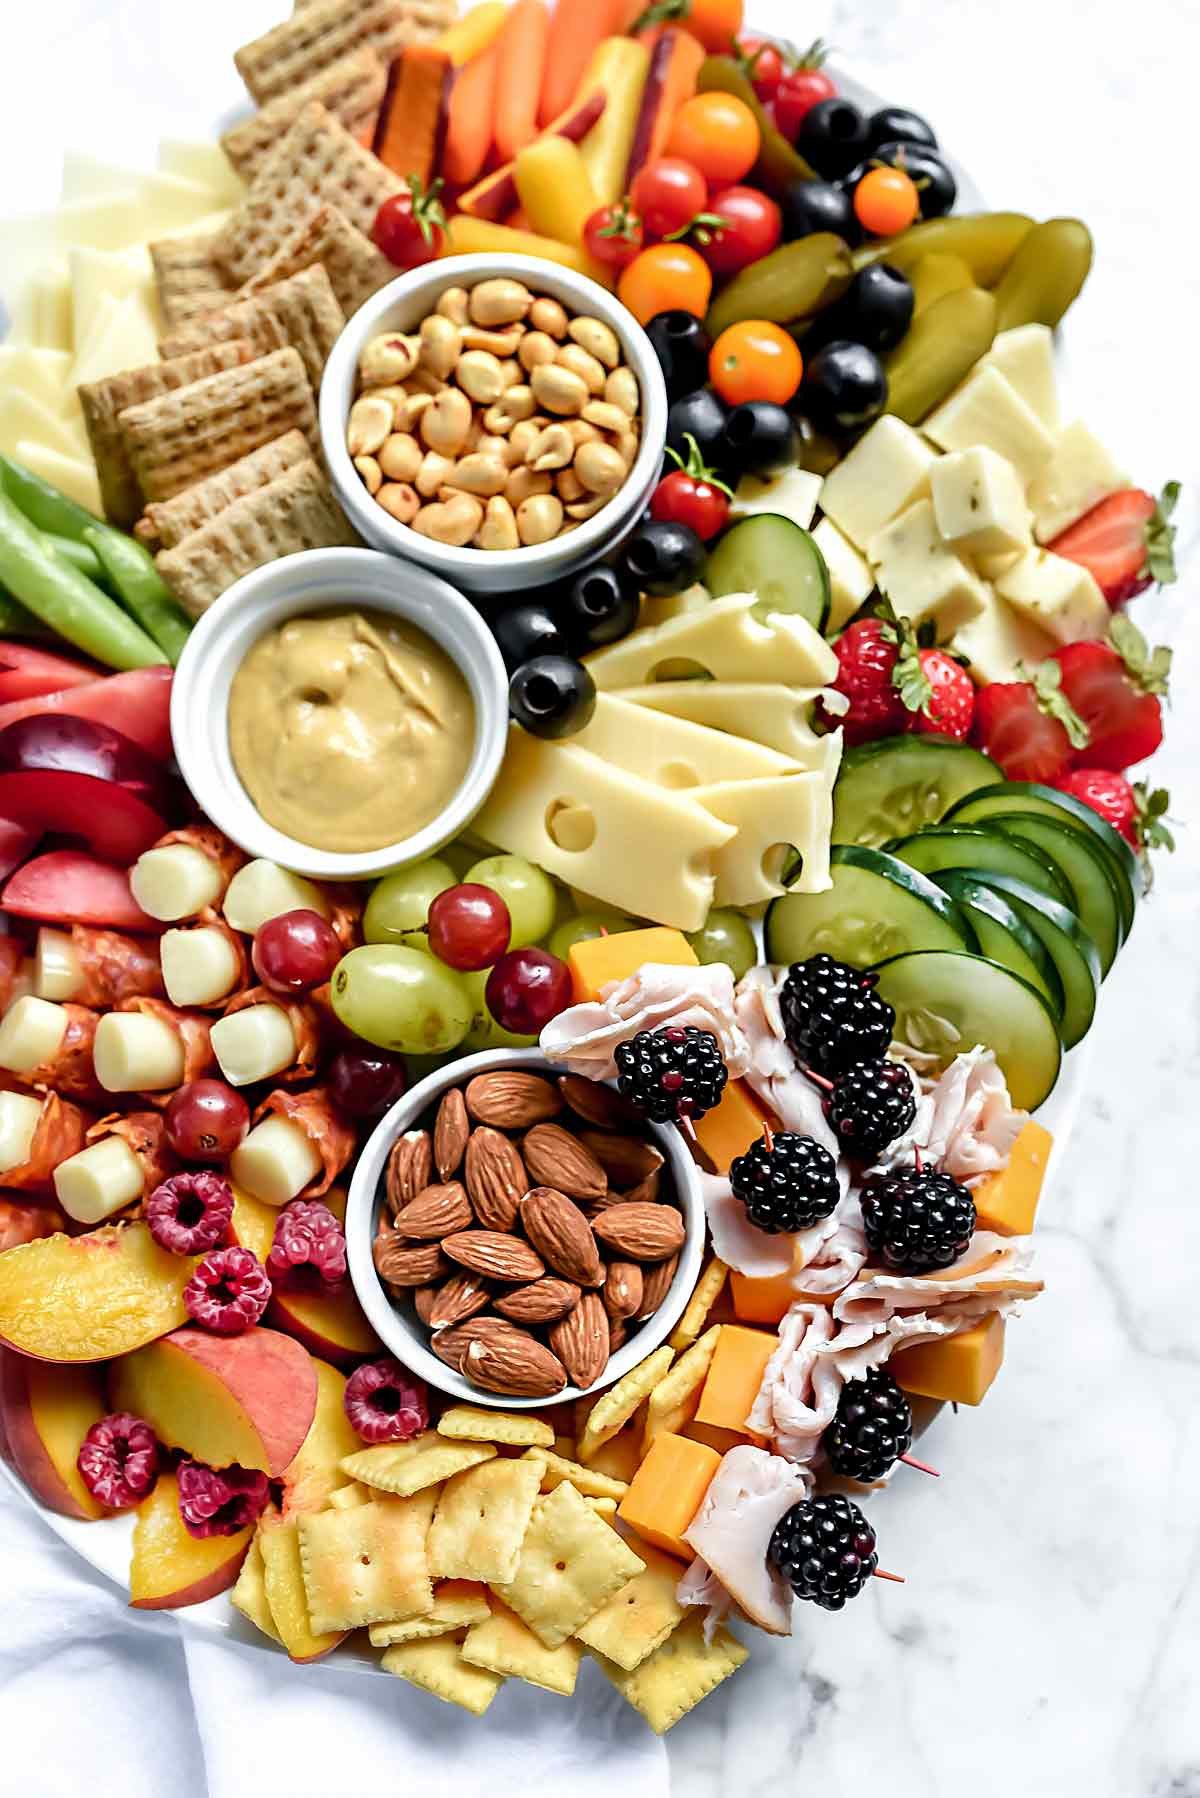 ... and won\u0027t make a mess and watch out for heavily flavored nuts with spices smoke or salts that could dominate the rest of the items on the platter.  sc 1 st  FoodieCrush & How to Make a Kid-Friendly Cheese Board Even Adults Will Love ...